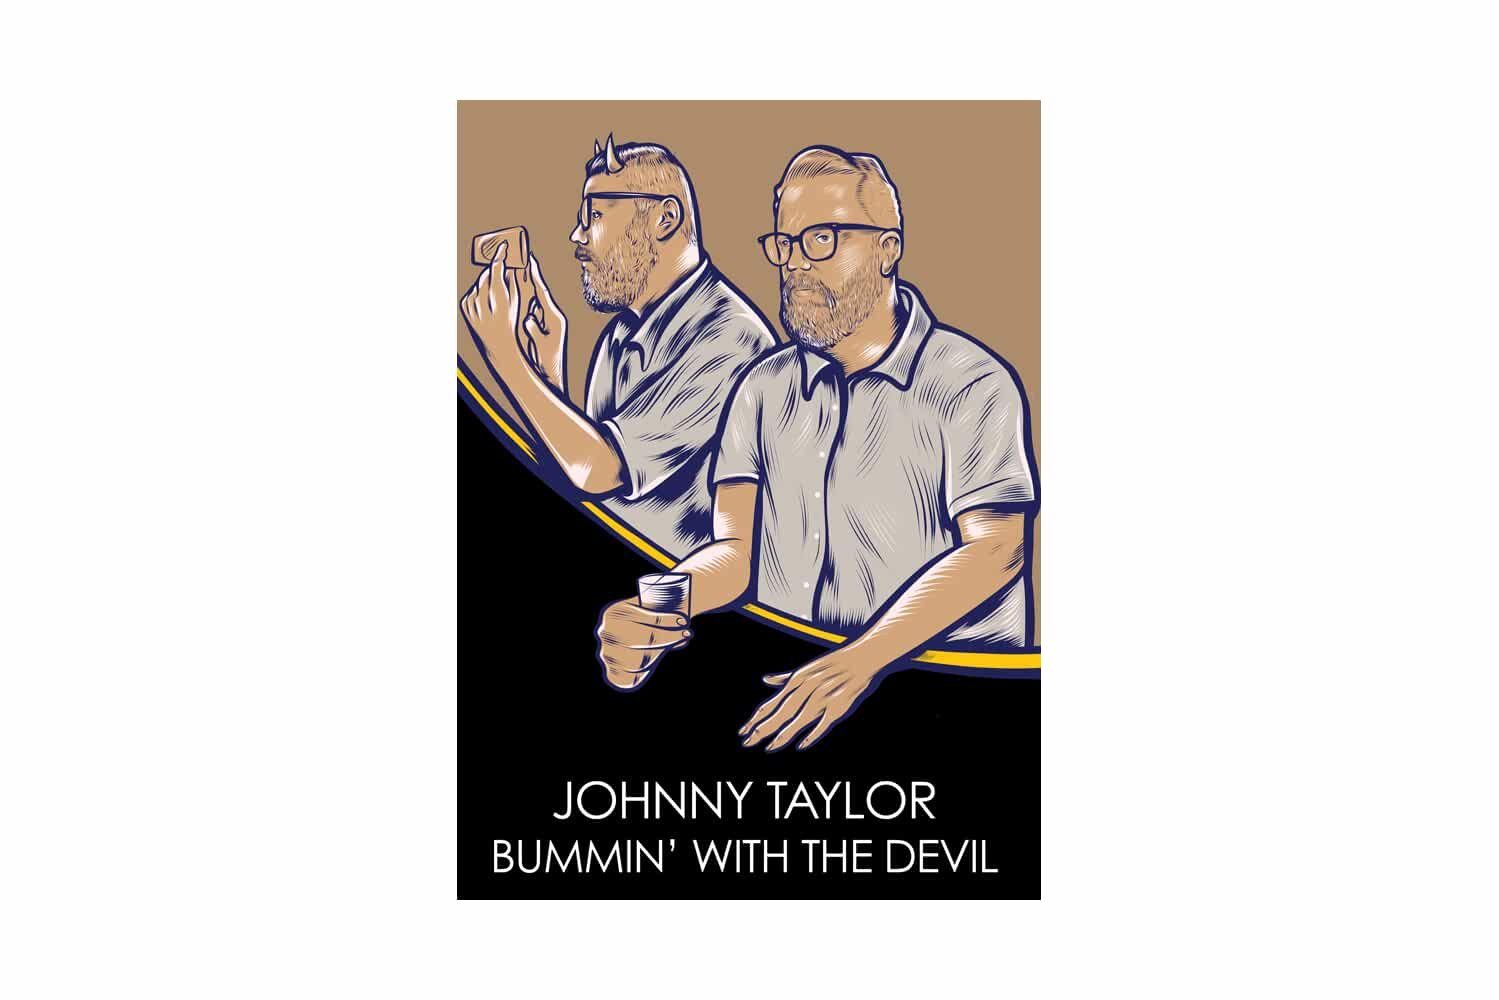 Johnny Taylor: Bummin' with the Devil (2018)